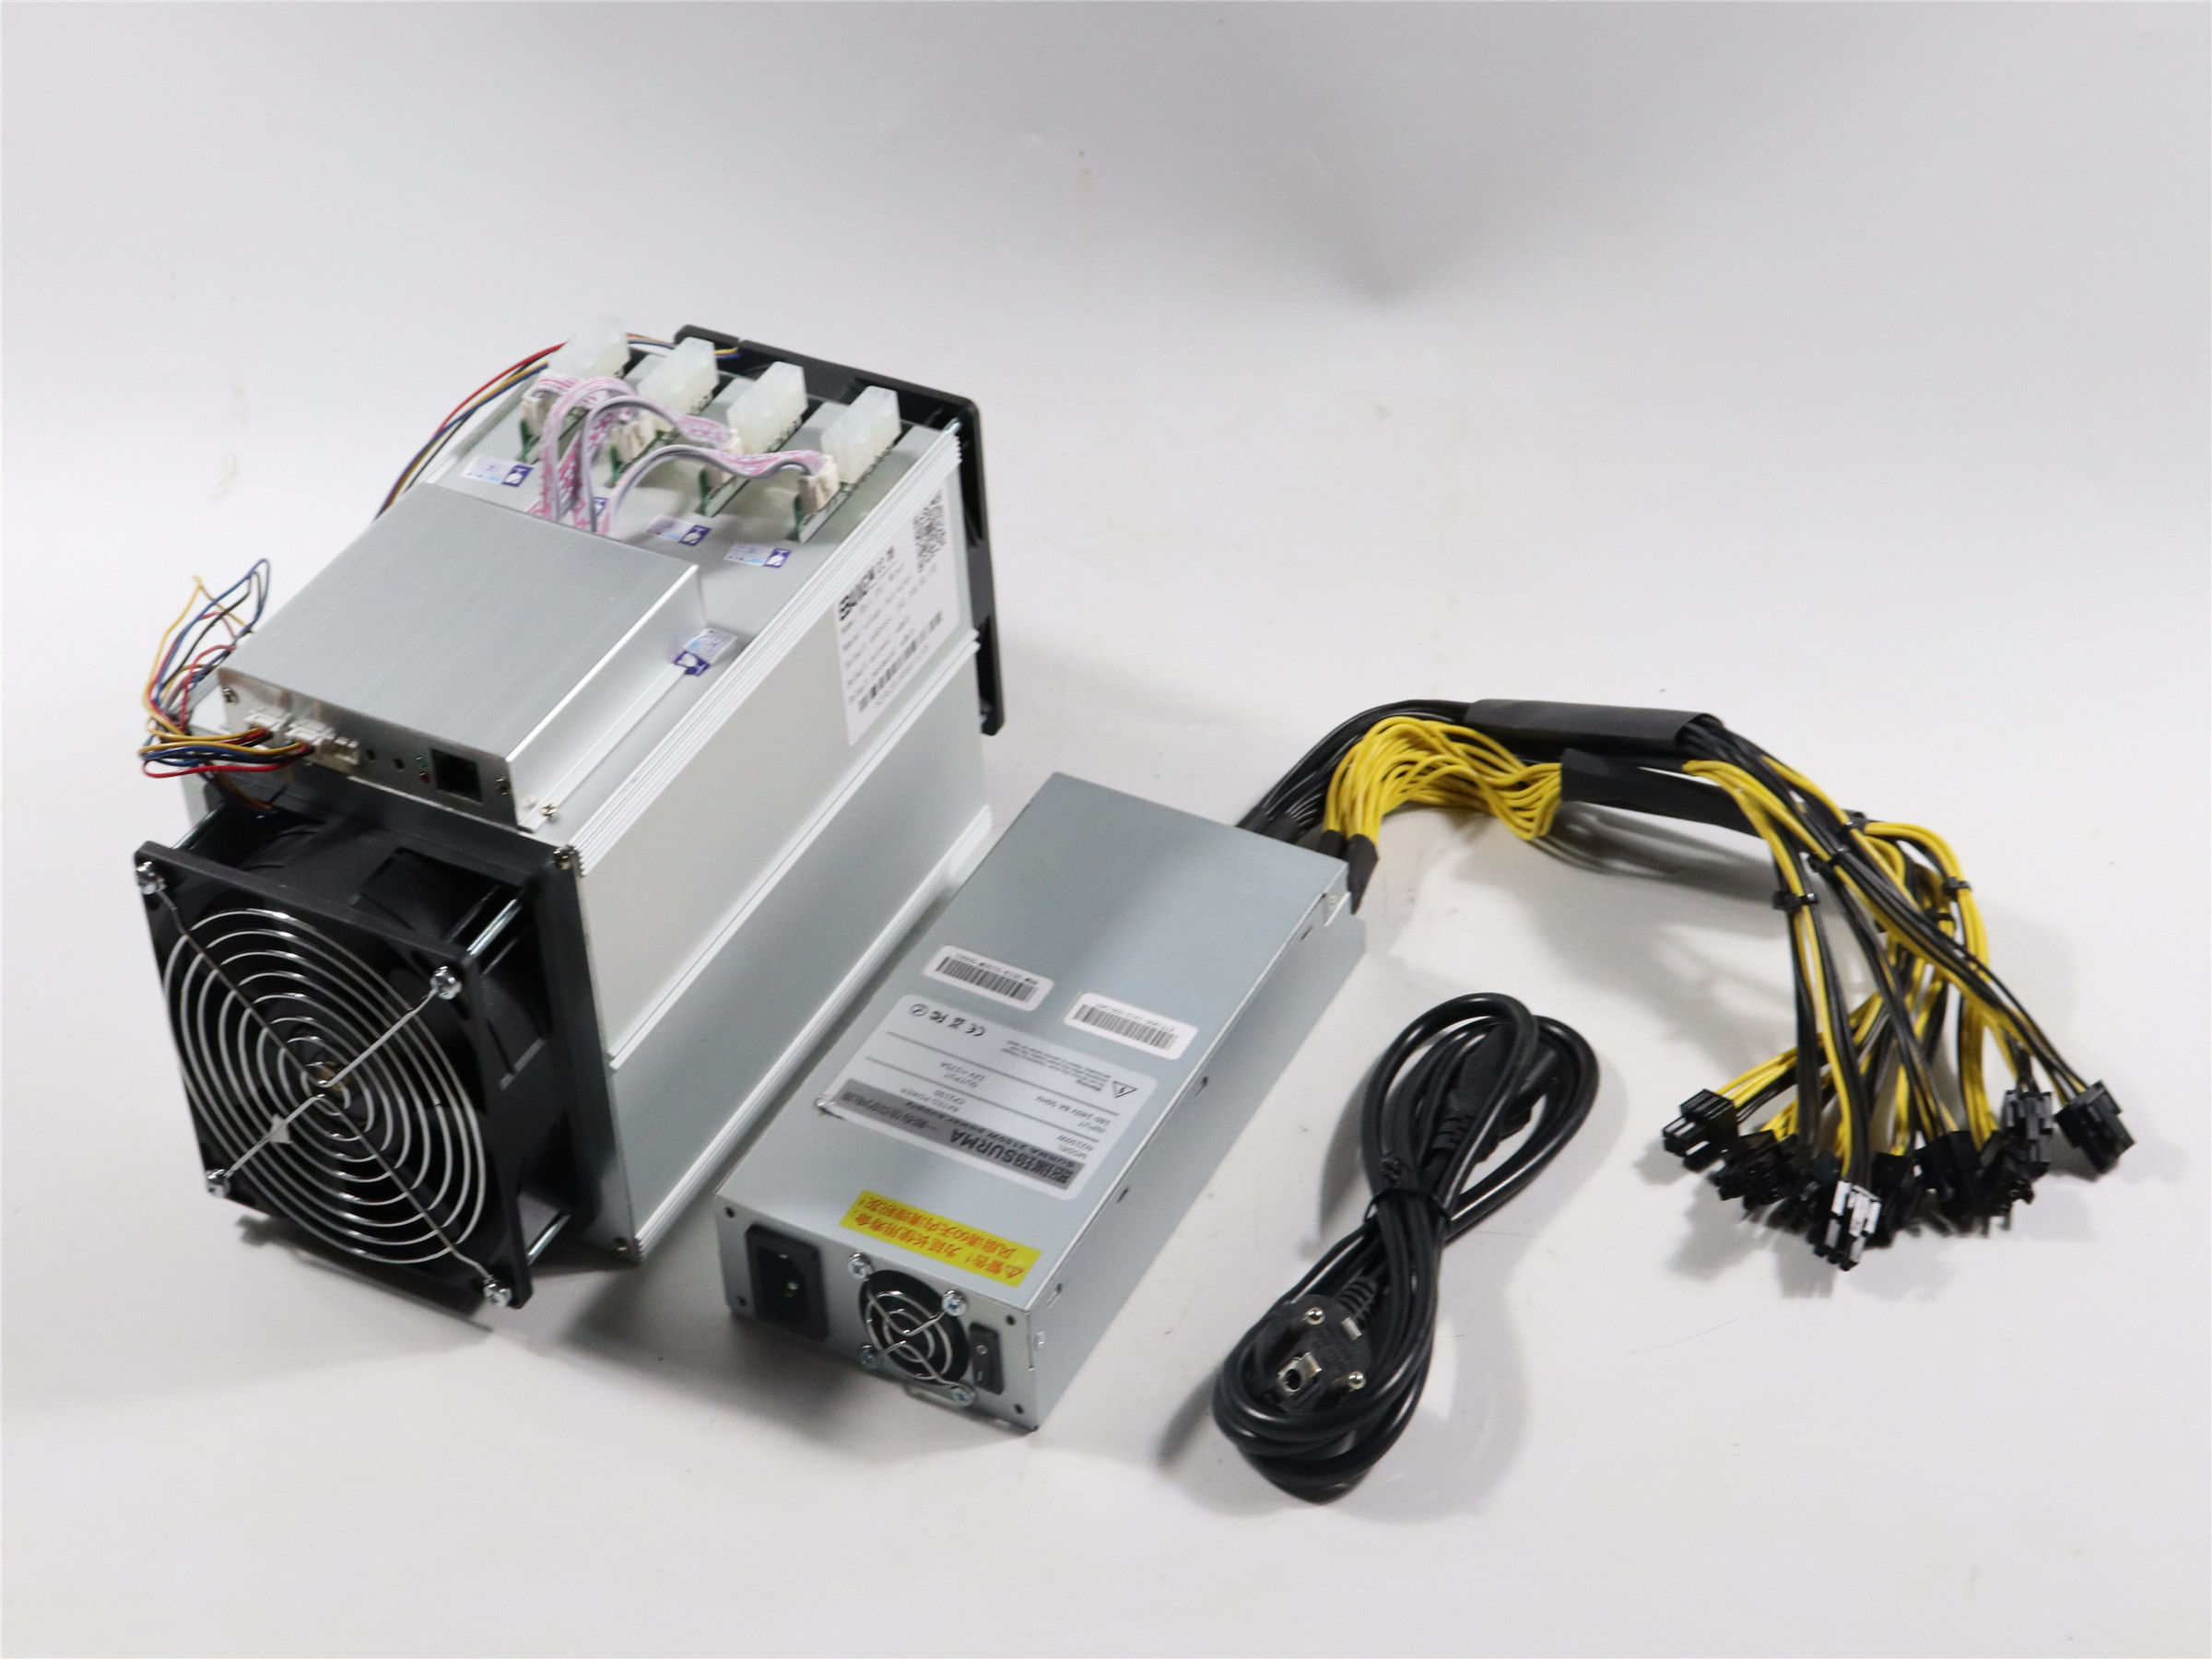 Used Ebit E9i 13.5T With PSU Asic Bitcoin BTC BCH Miner Economic Than Antminer S9 S9j T9+ S11 S15 Z9 Z11 WhatsMiner M3 M3X 1